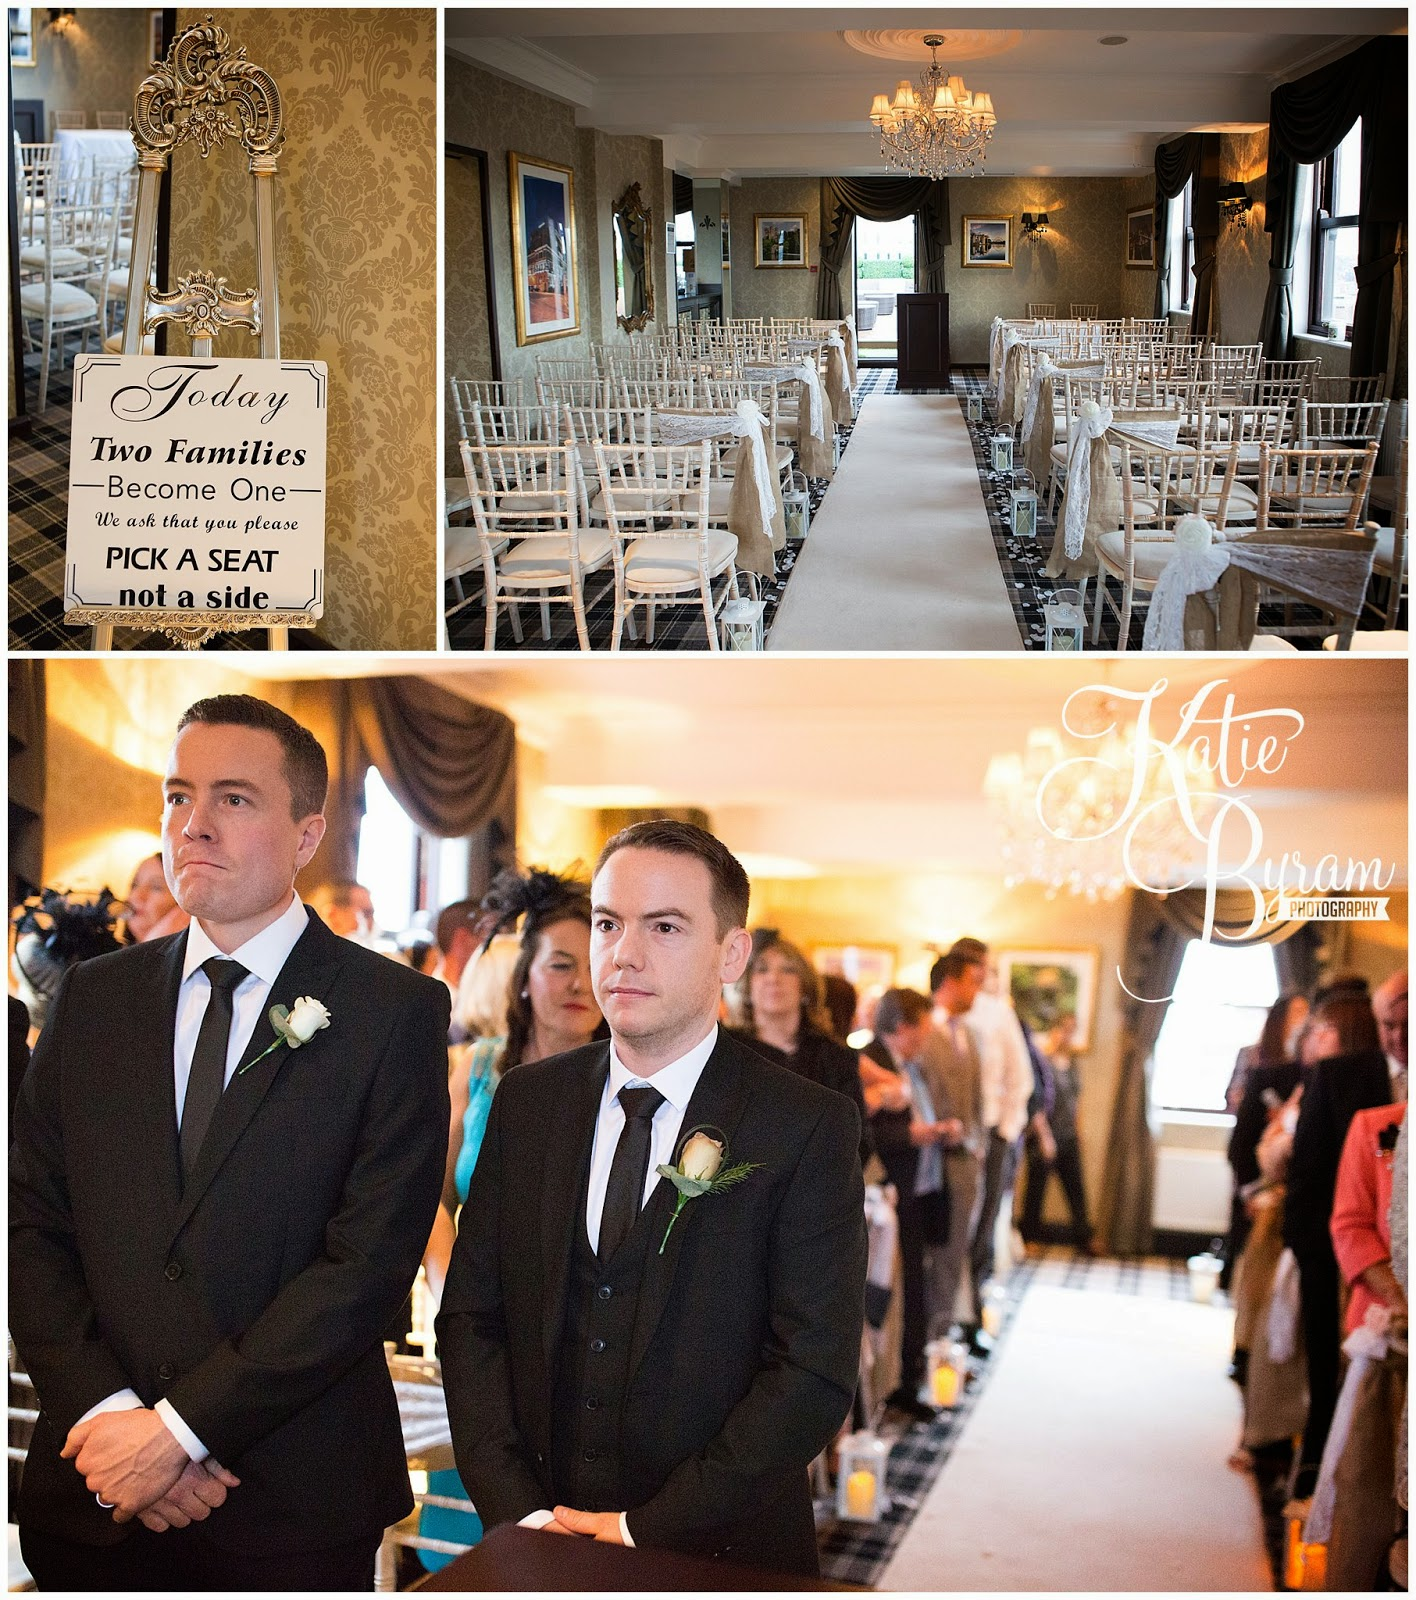 the sky lounge, newcastle city centre wedding, the vermont hotel,vermont weddings, newcastle wedding venue, katie byram photography, hotel wedding newcastle, quayside, nighttime wedding photographs